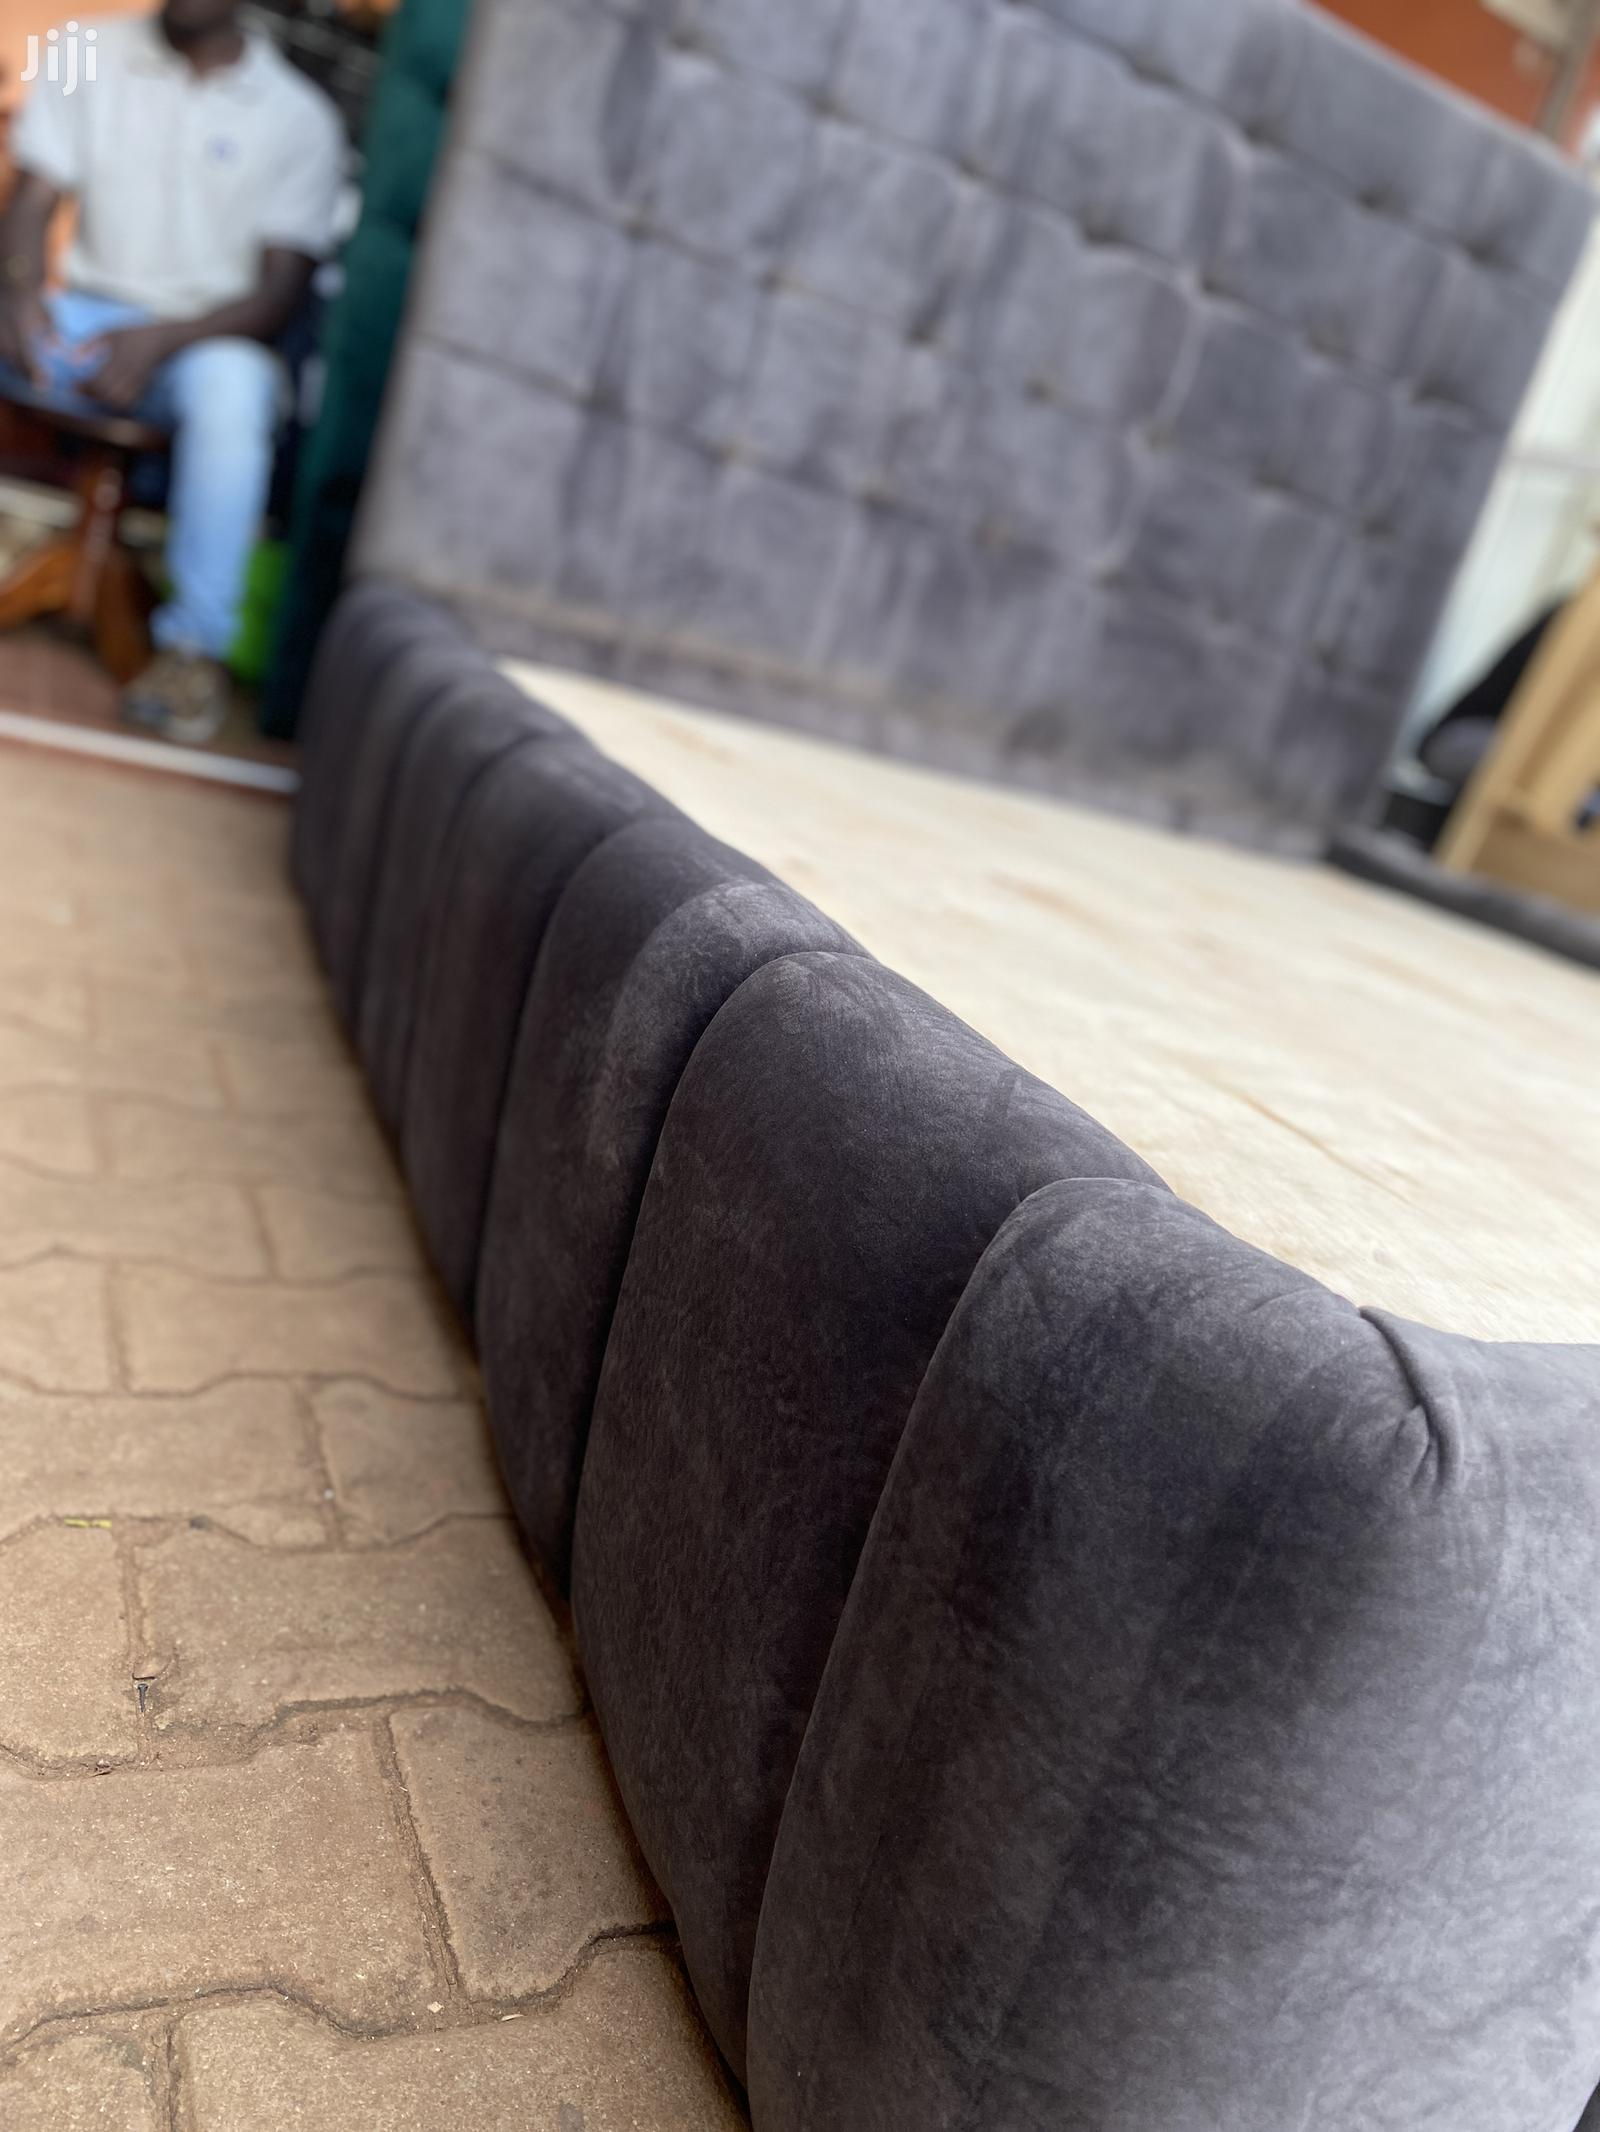 5 By 6 Bed | Furniture for sale in Kampala, Central Region, Uganda